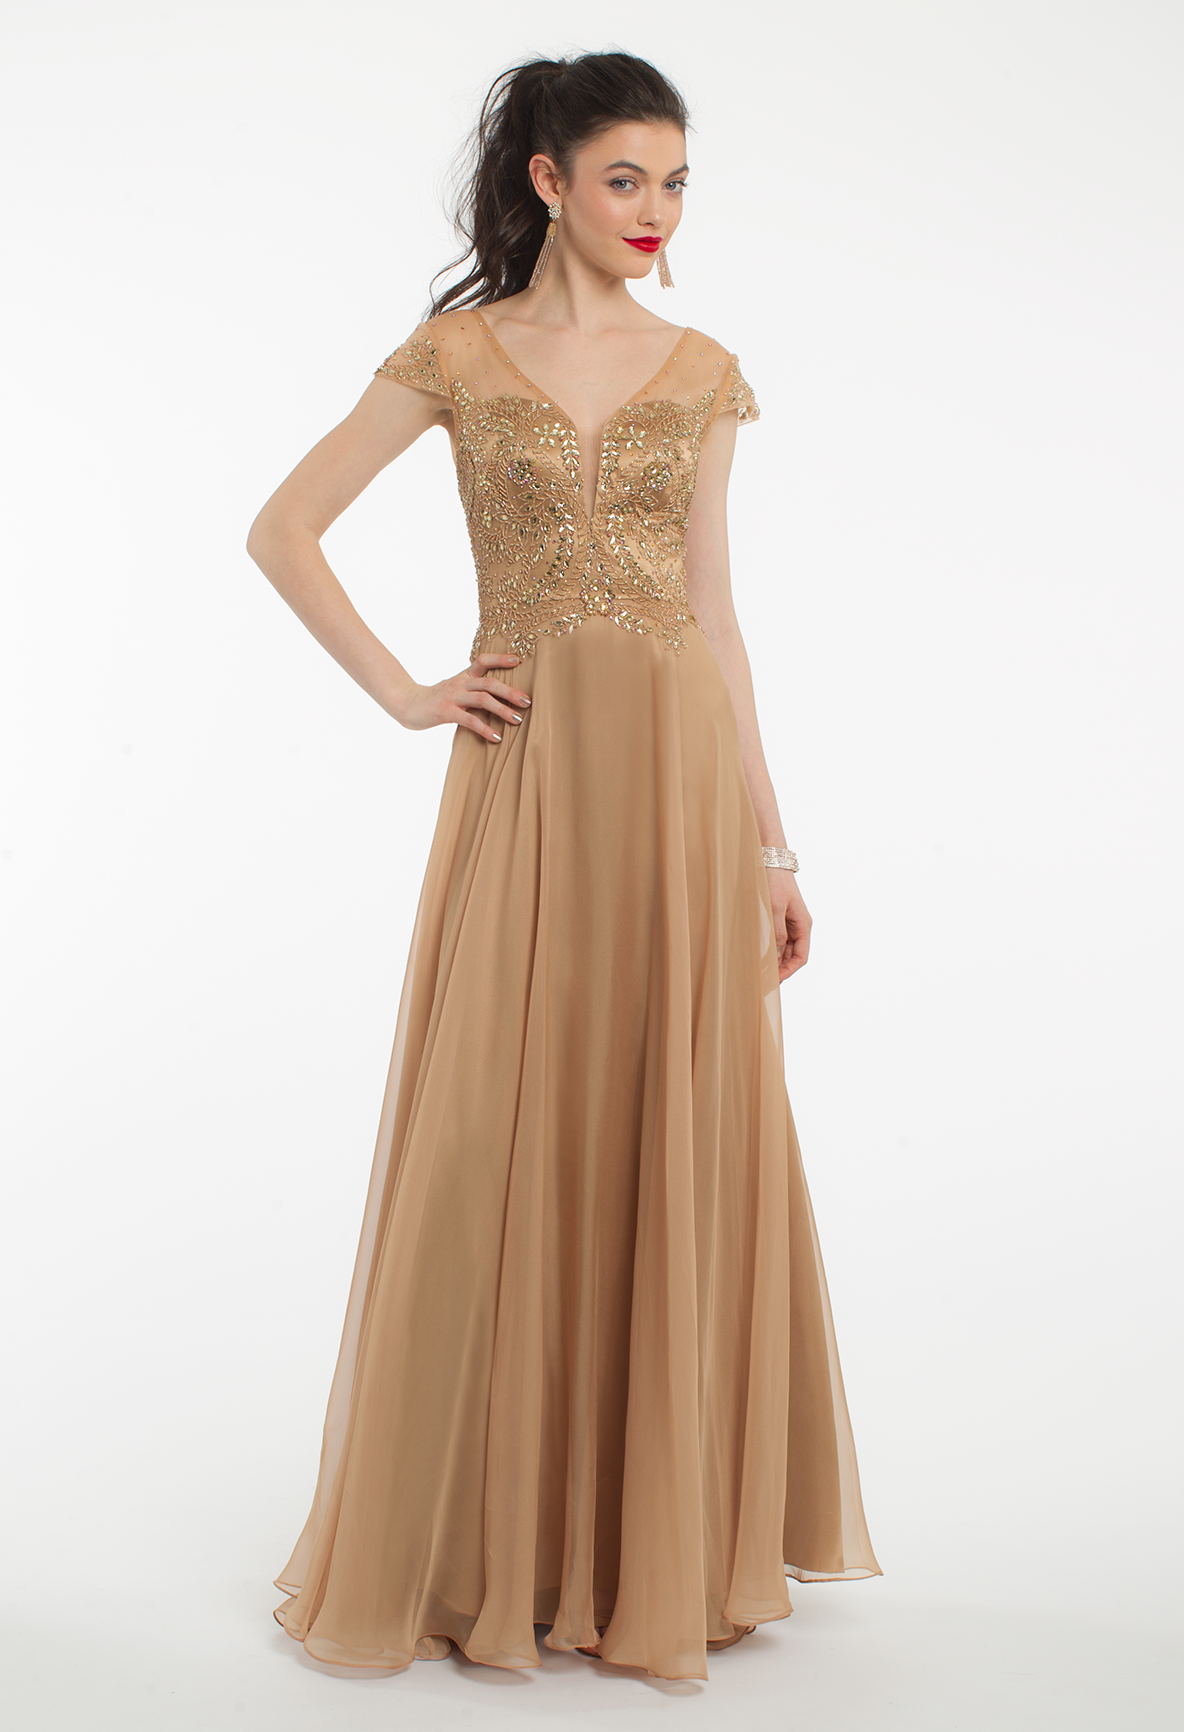 Define elegance with this long evening dress! The features